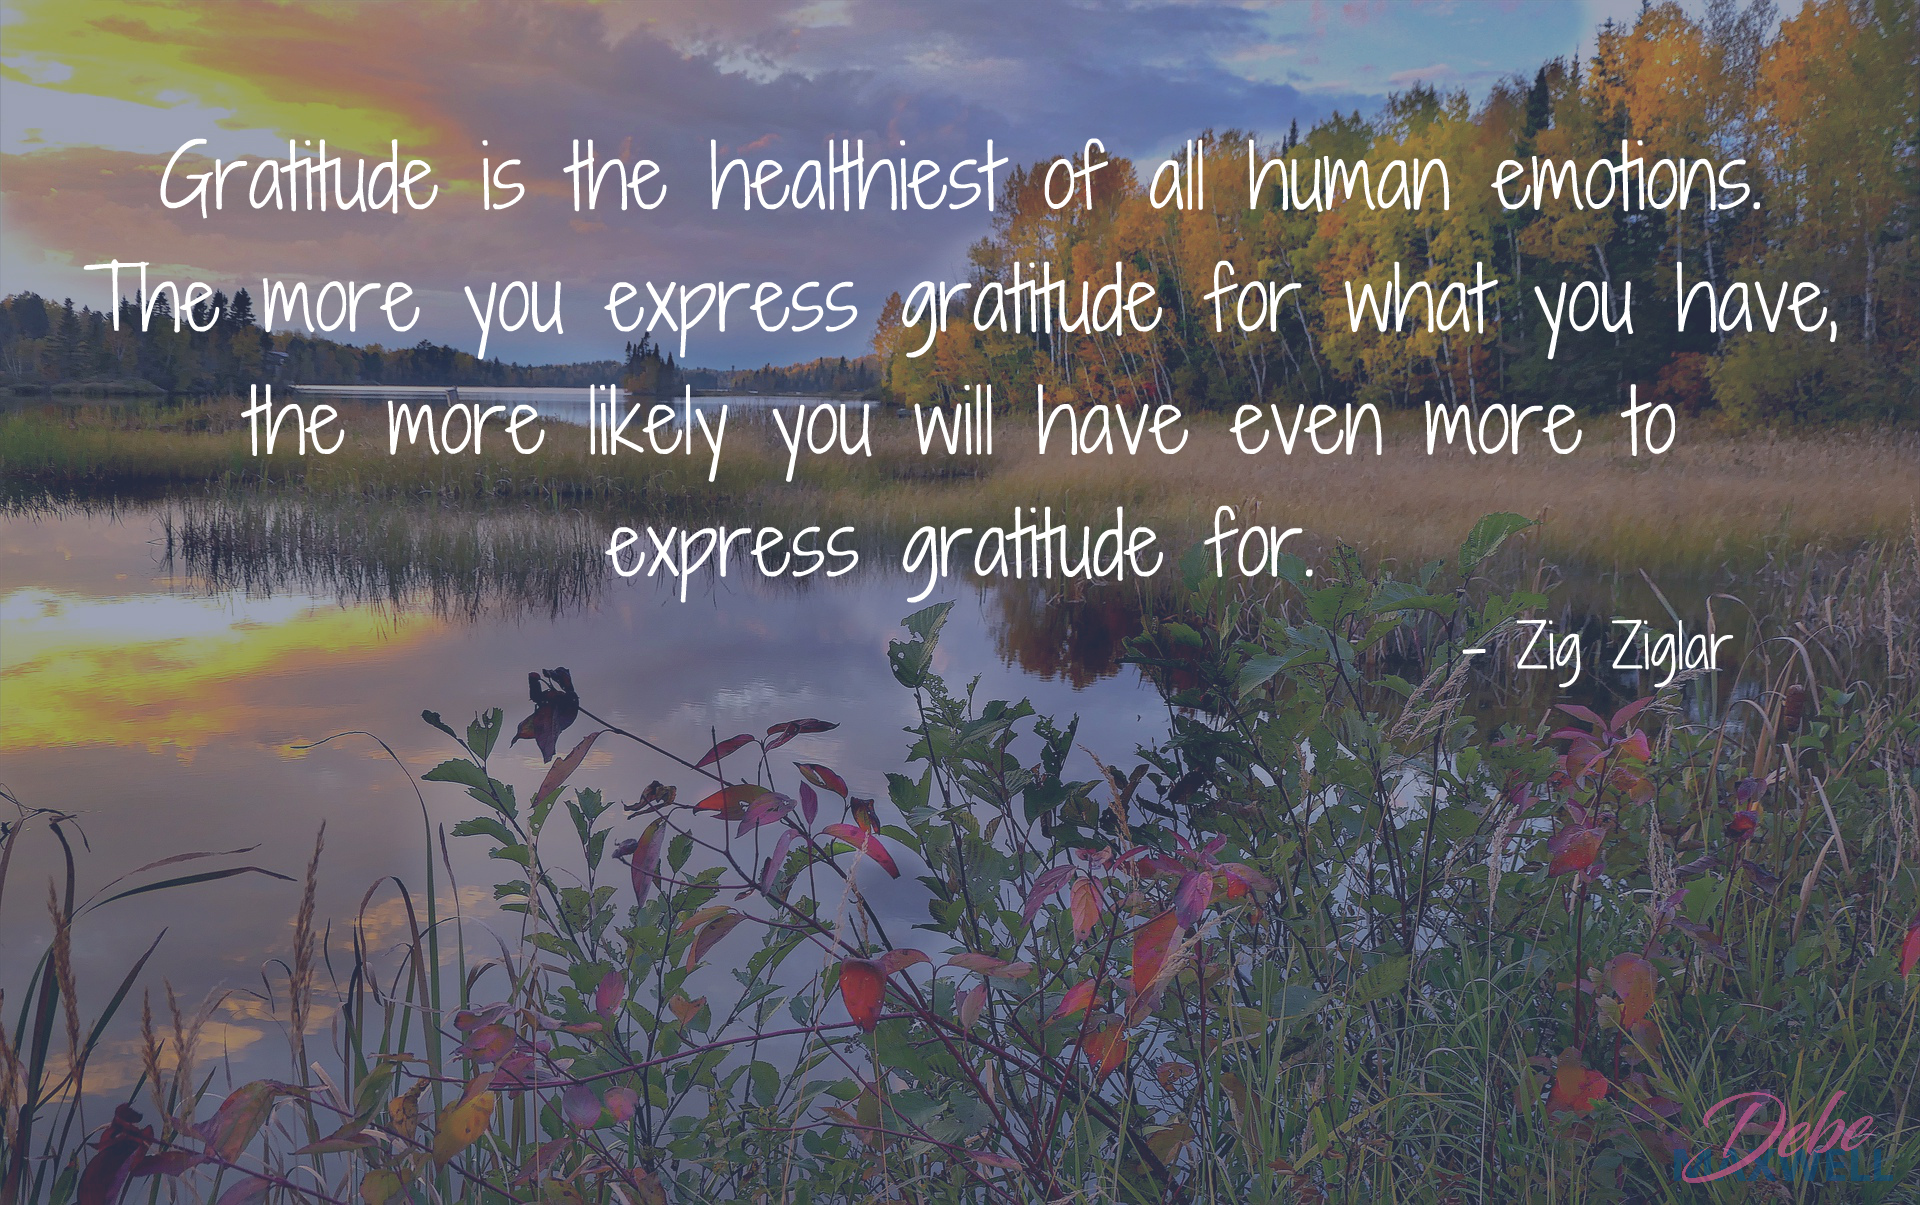 Gratitude is the healthiest of all human emotions